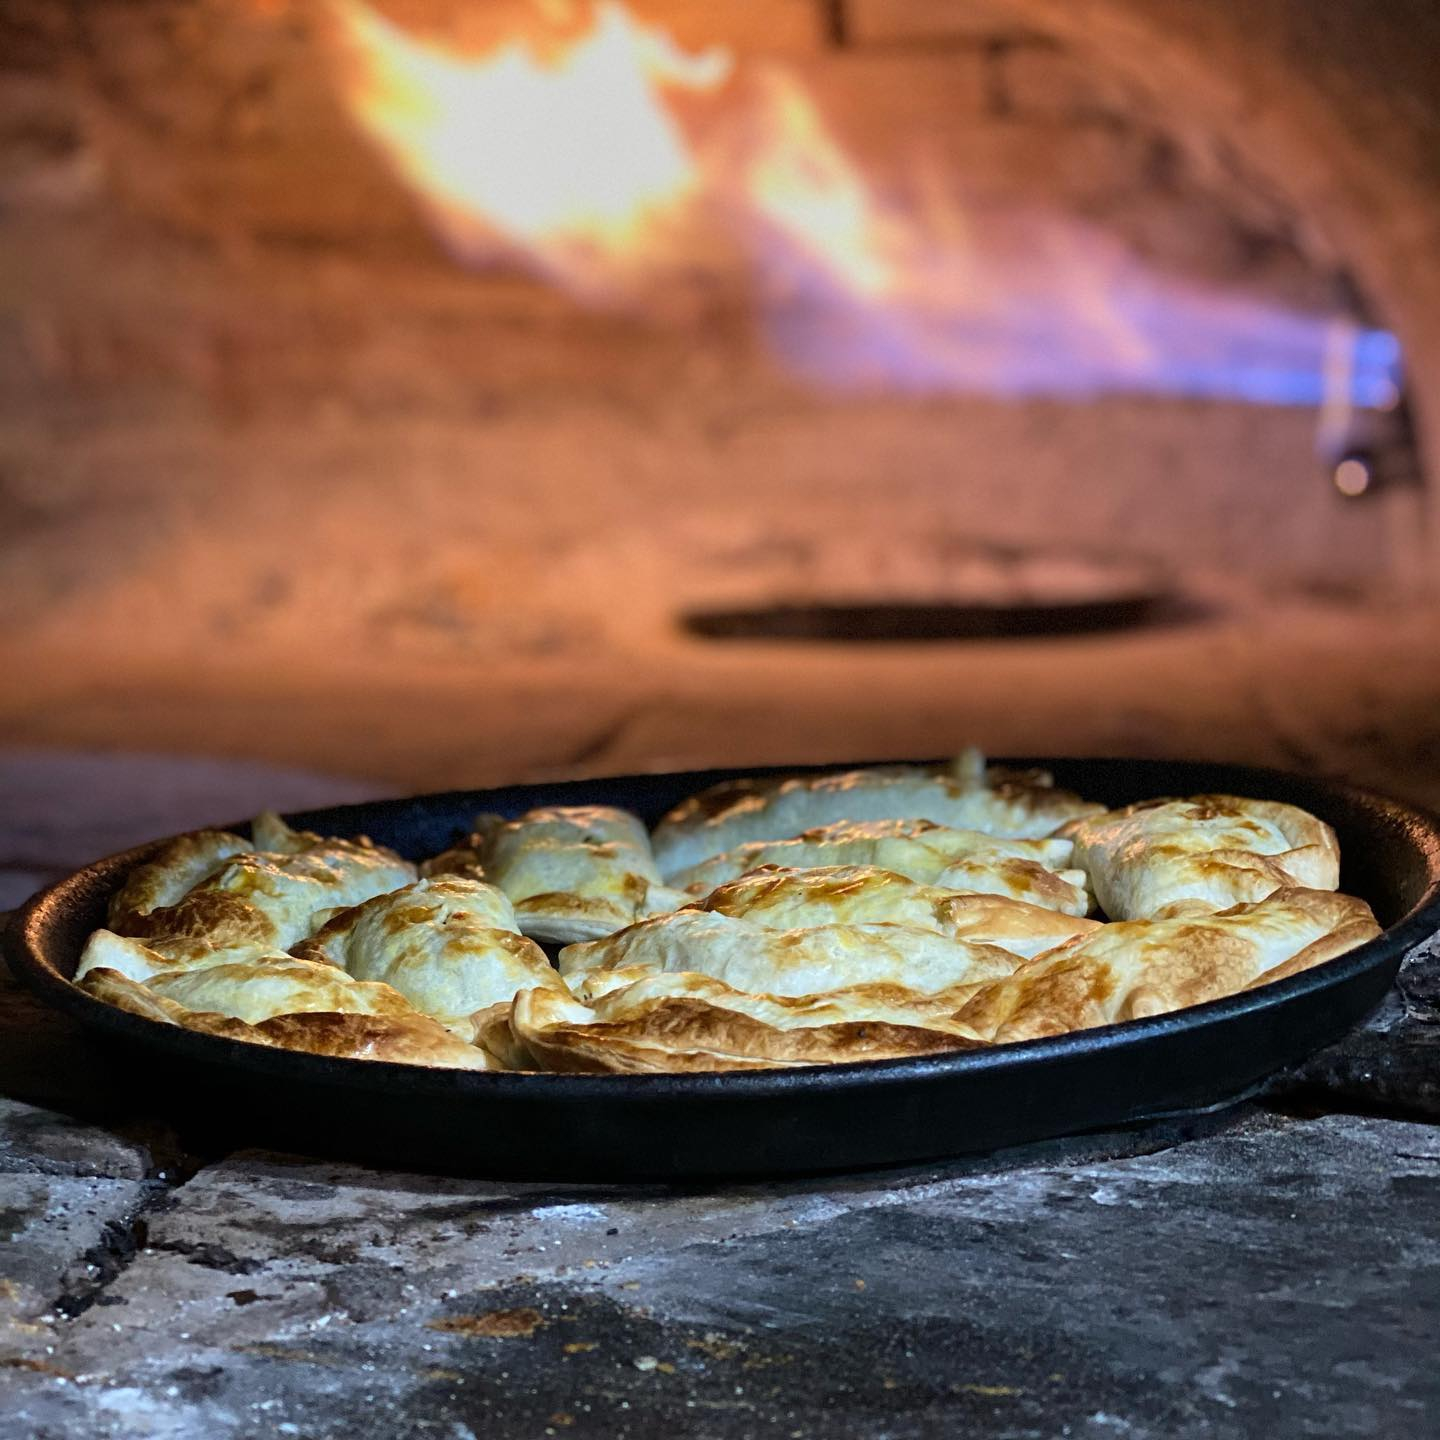 Best pizza places in Argentina